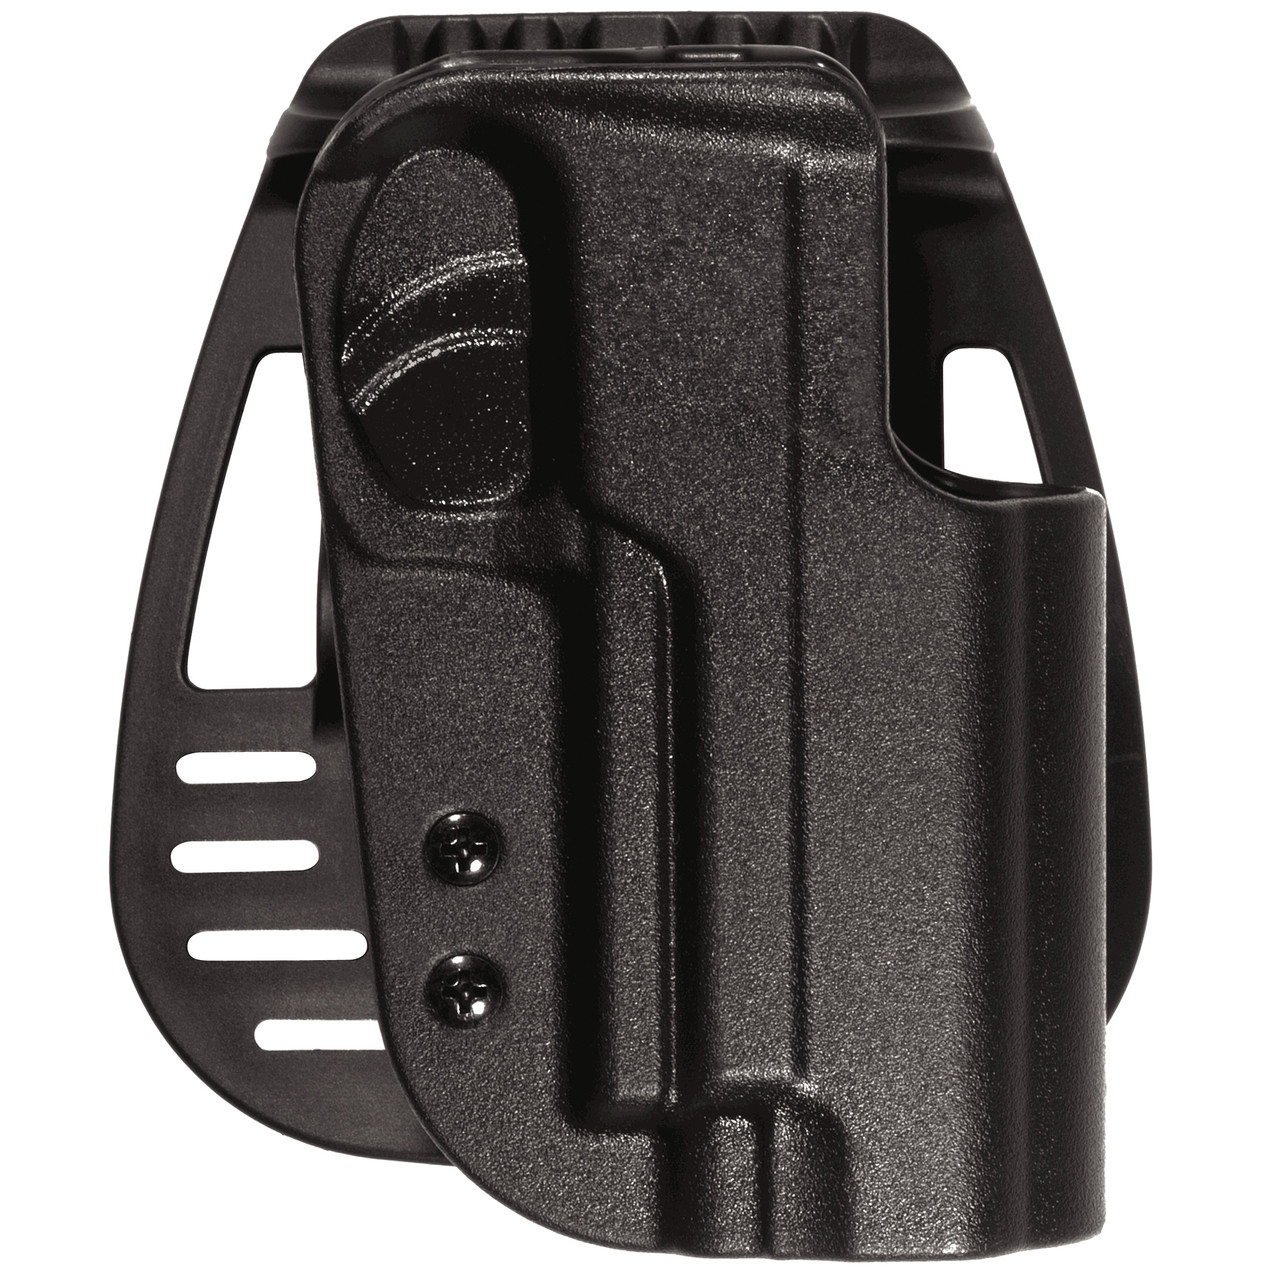 Uncle Mike's Kydex Paddle Holster, Fits Glock 20/21, Right Hand, Black  5425-1, UPC : 043699542512